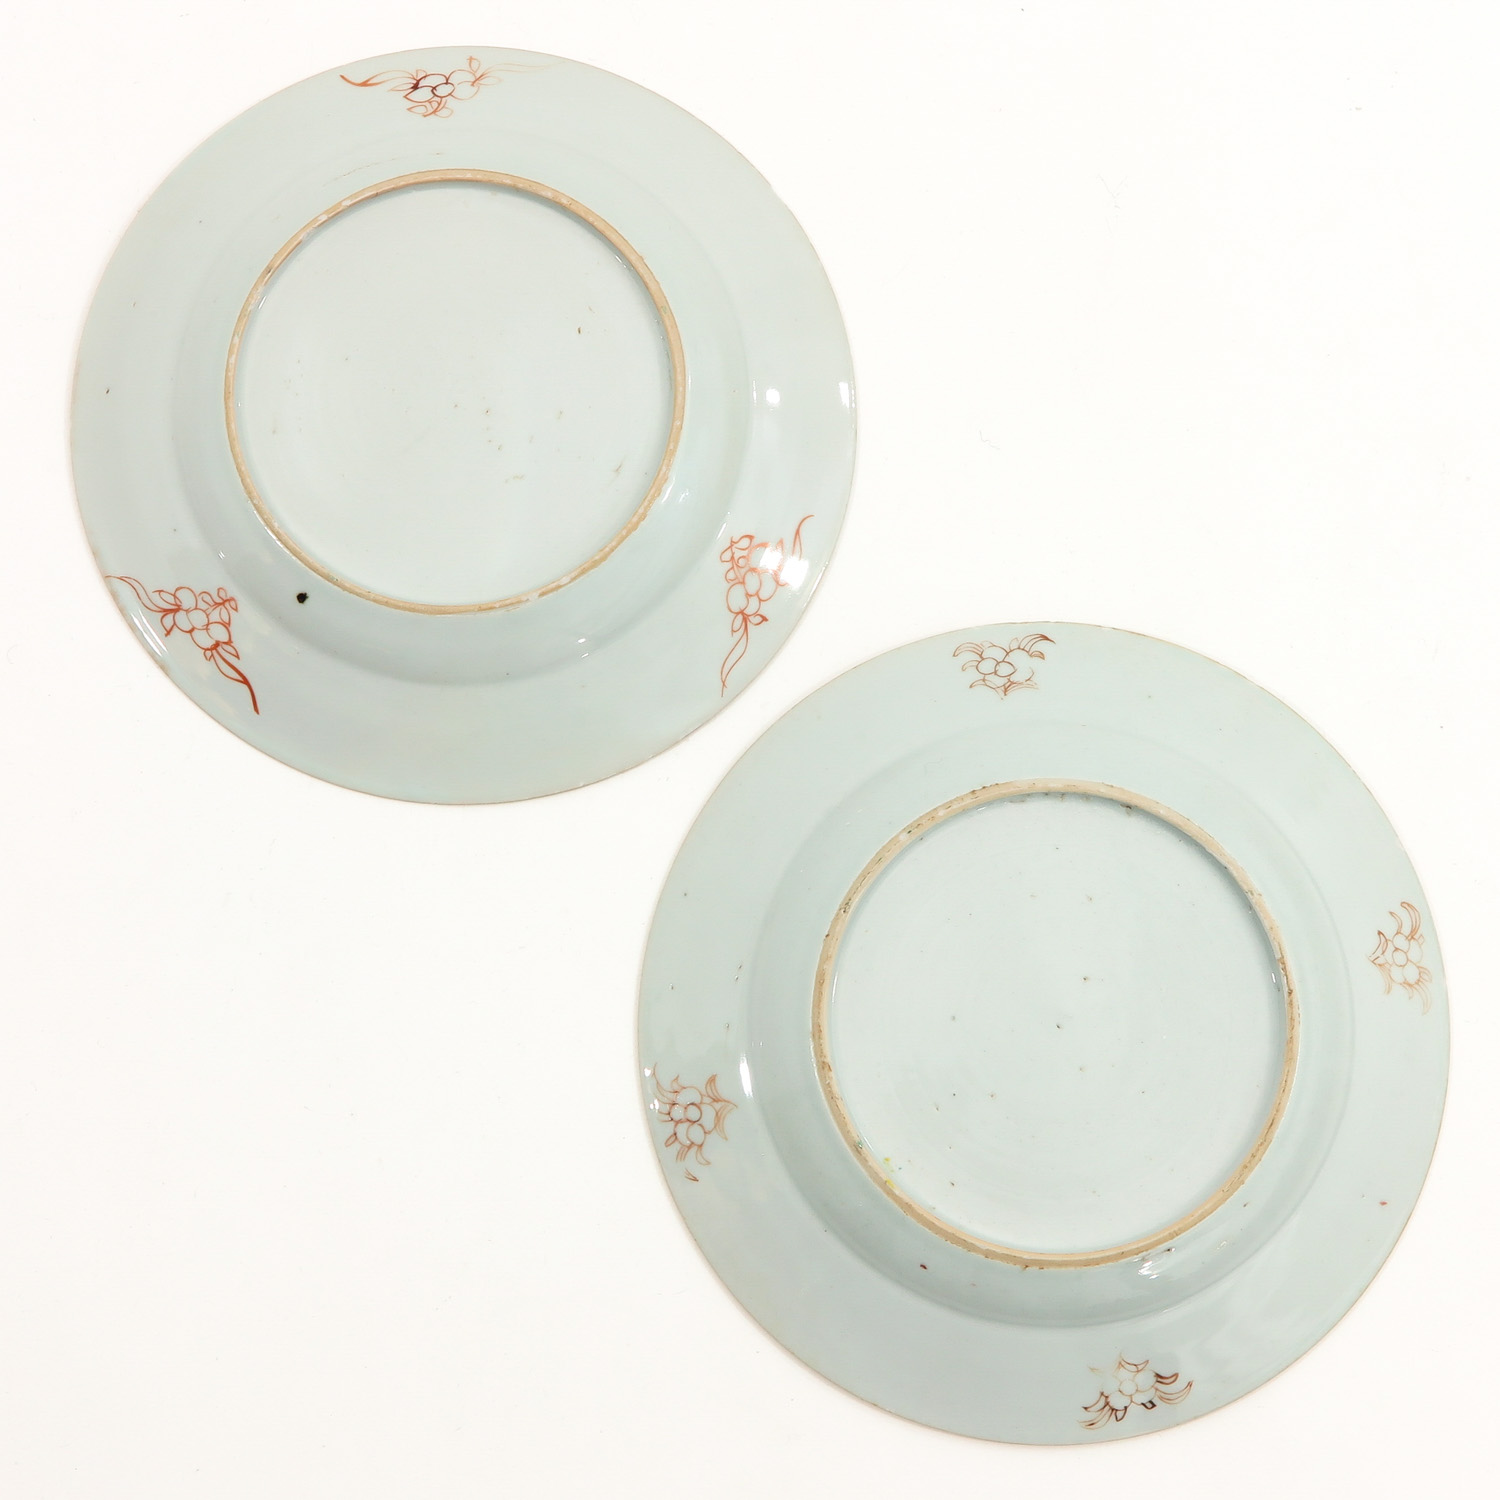 A Series of 4 Famille Rose Plates - Image 6 of 9